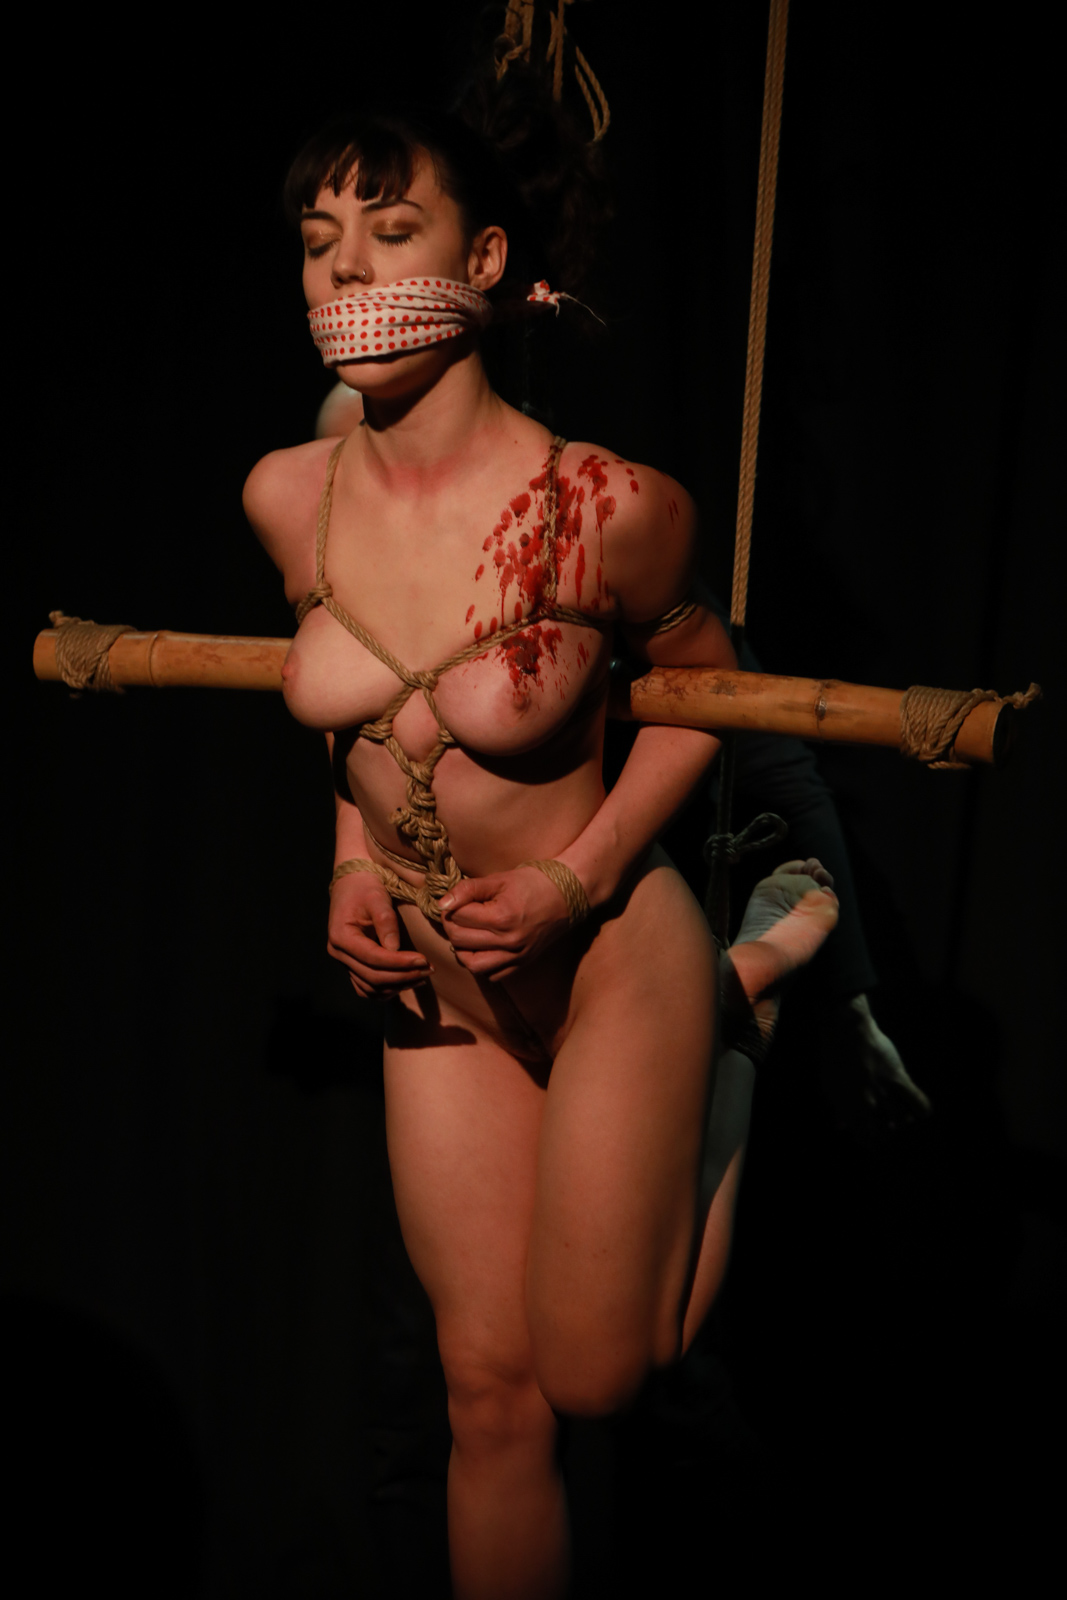 Shibari performance by Pedro and Gestalta at The Soap Box, London, December 2016